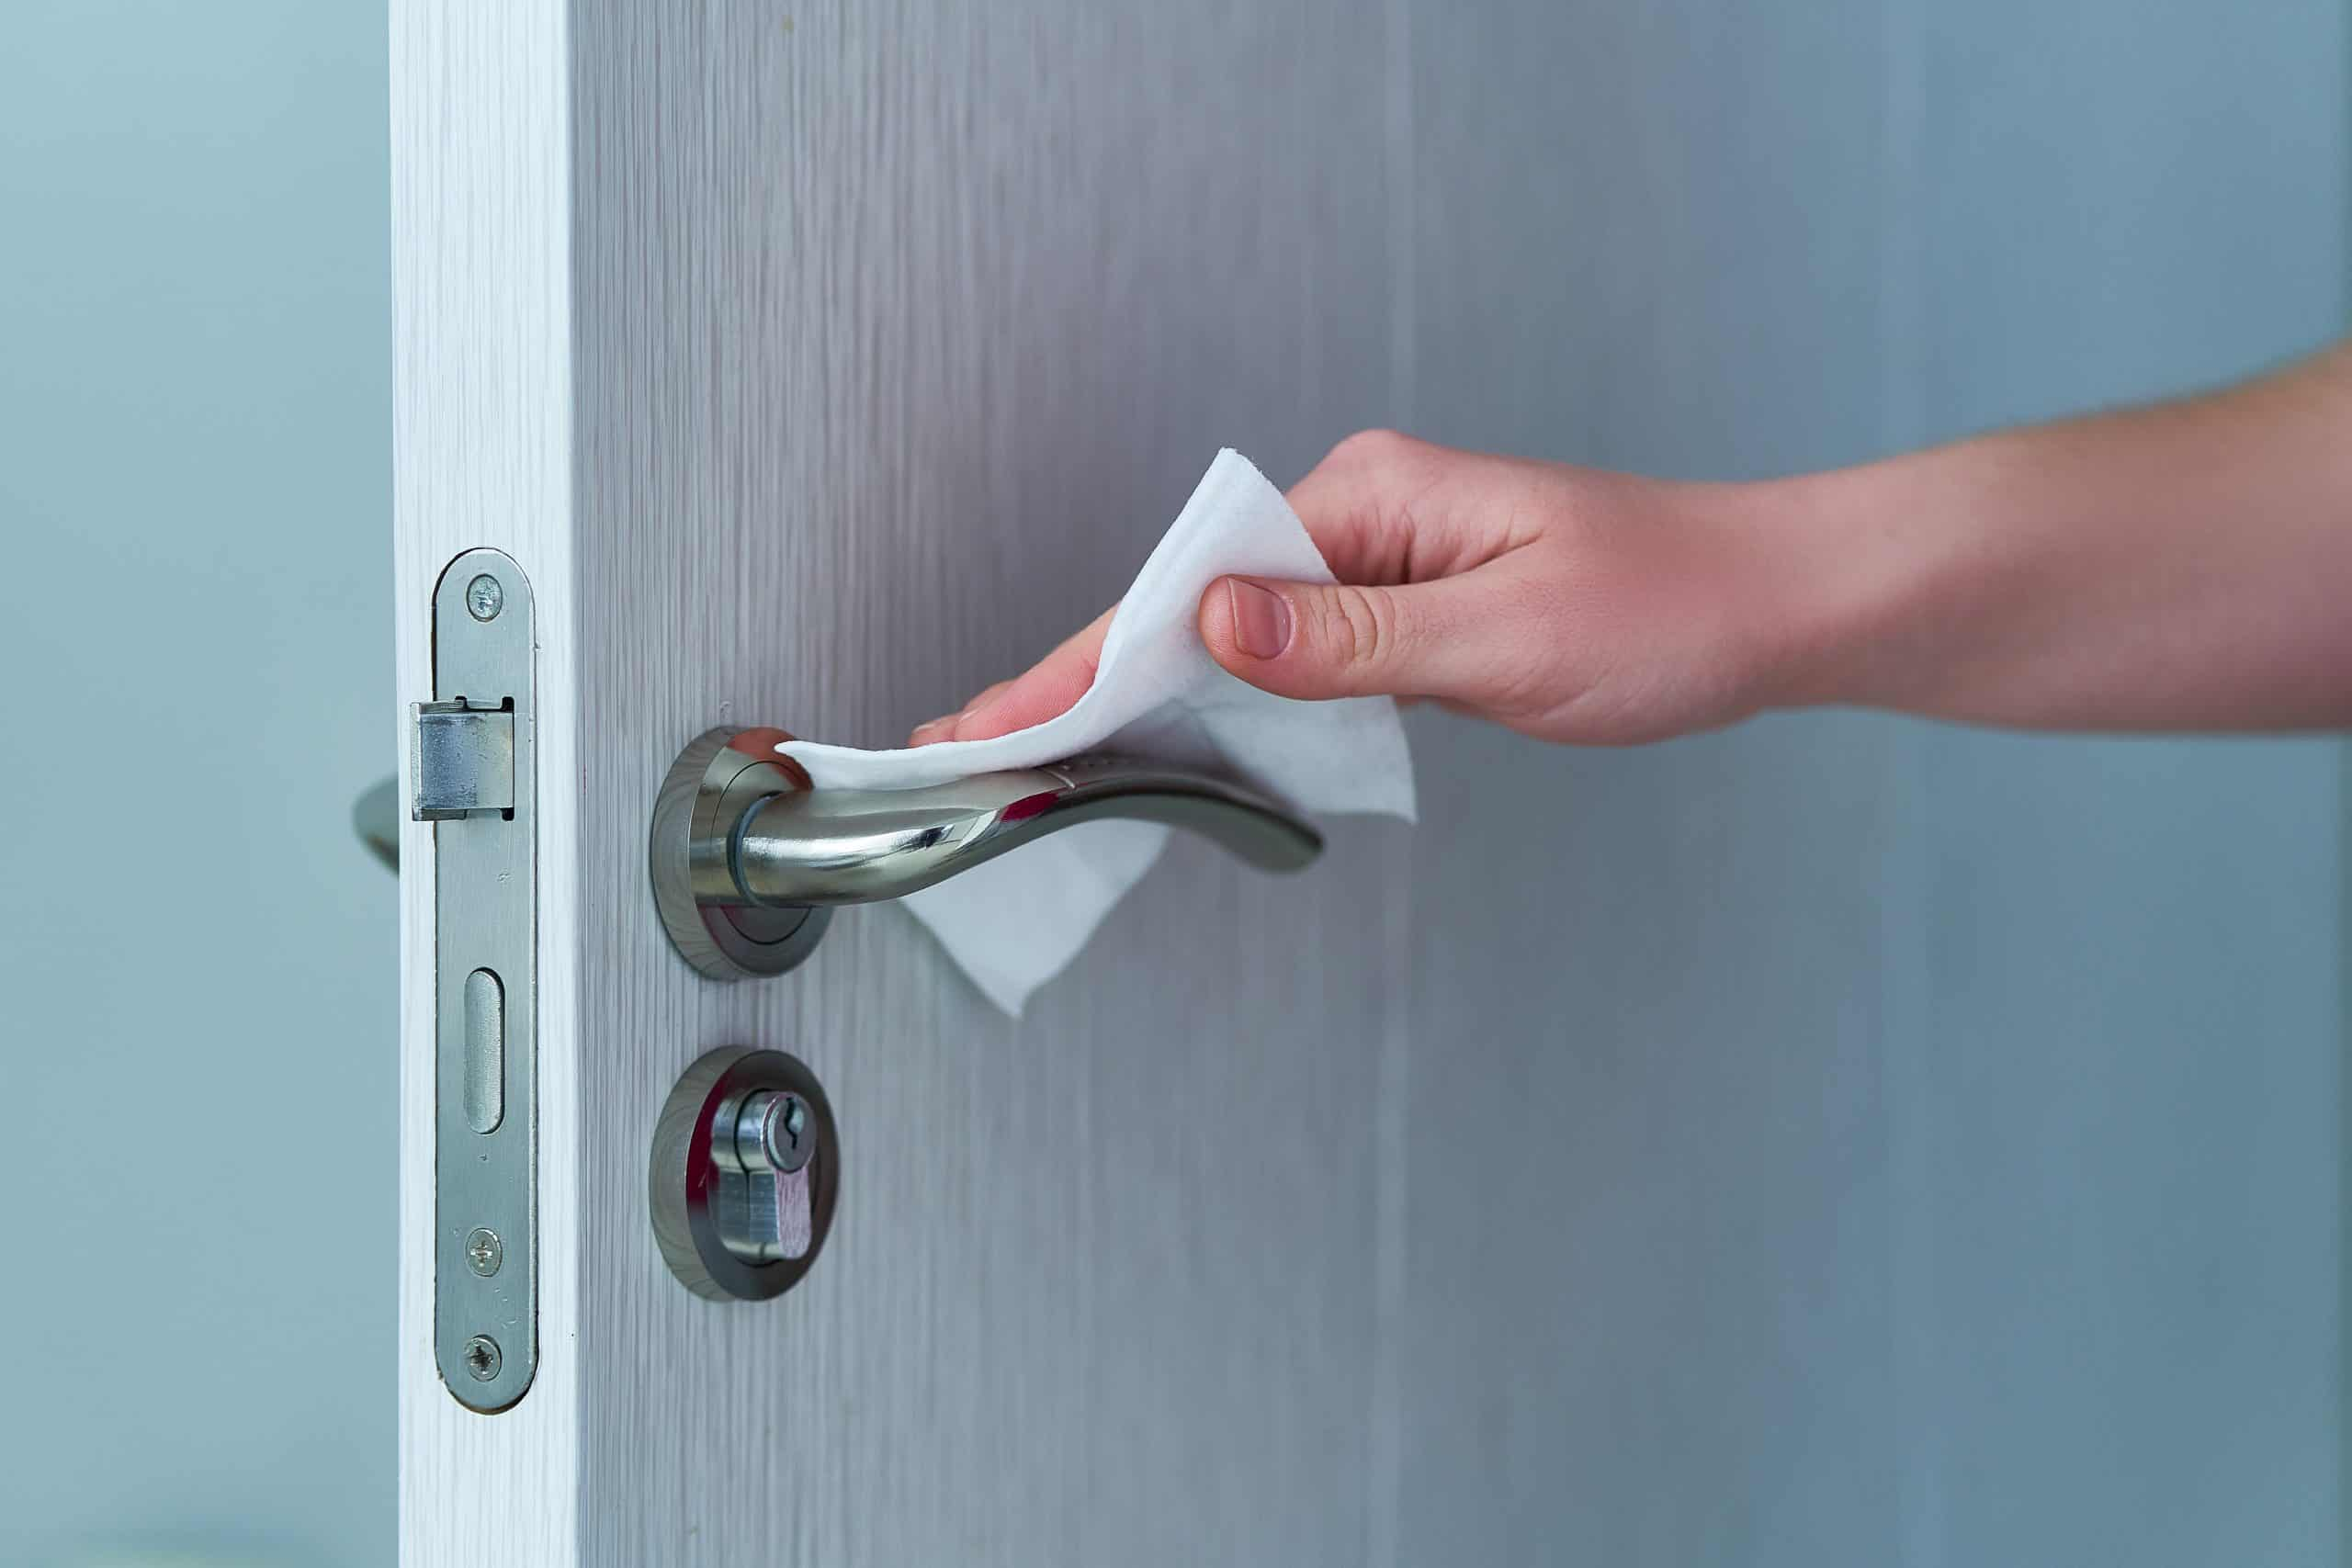 wiping a door handle with a disinfecting wipe